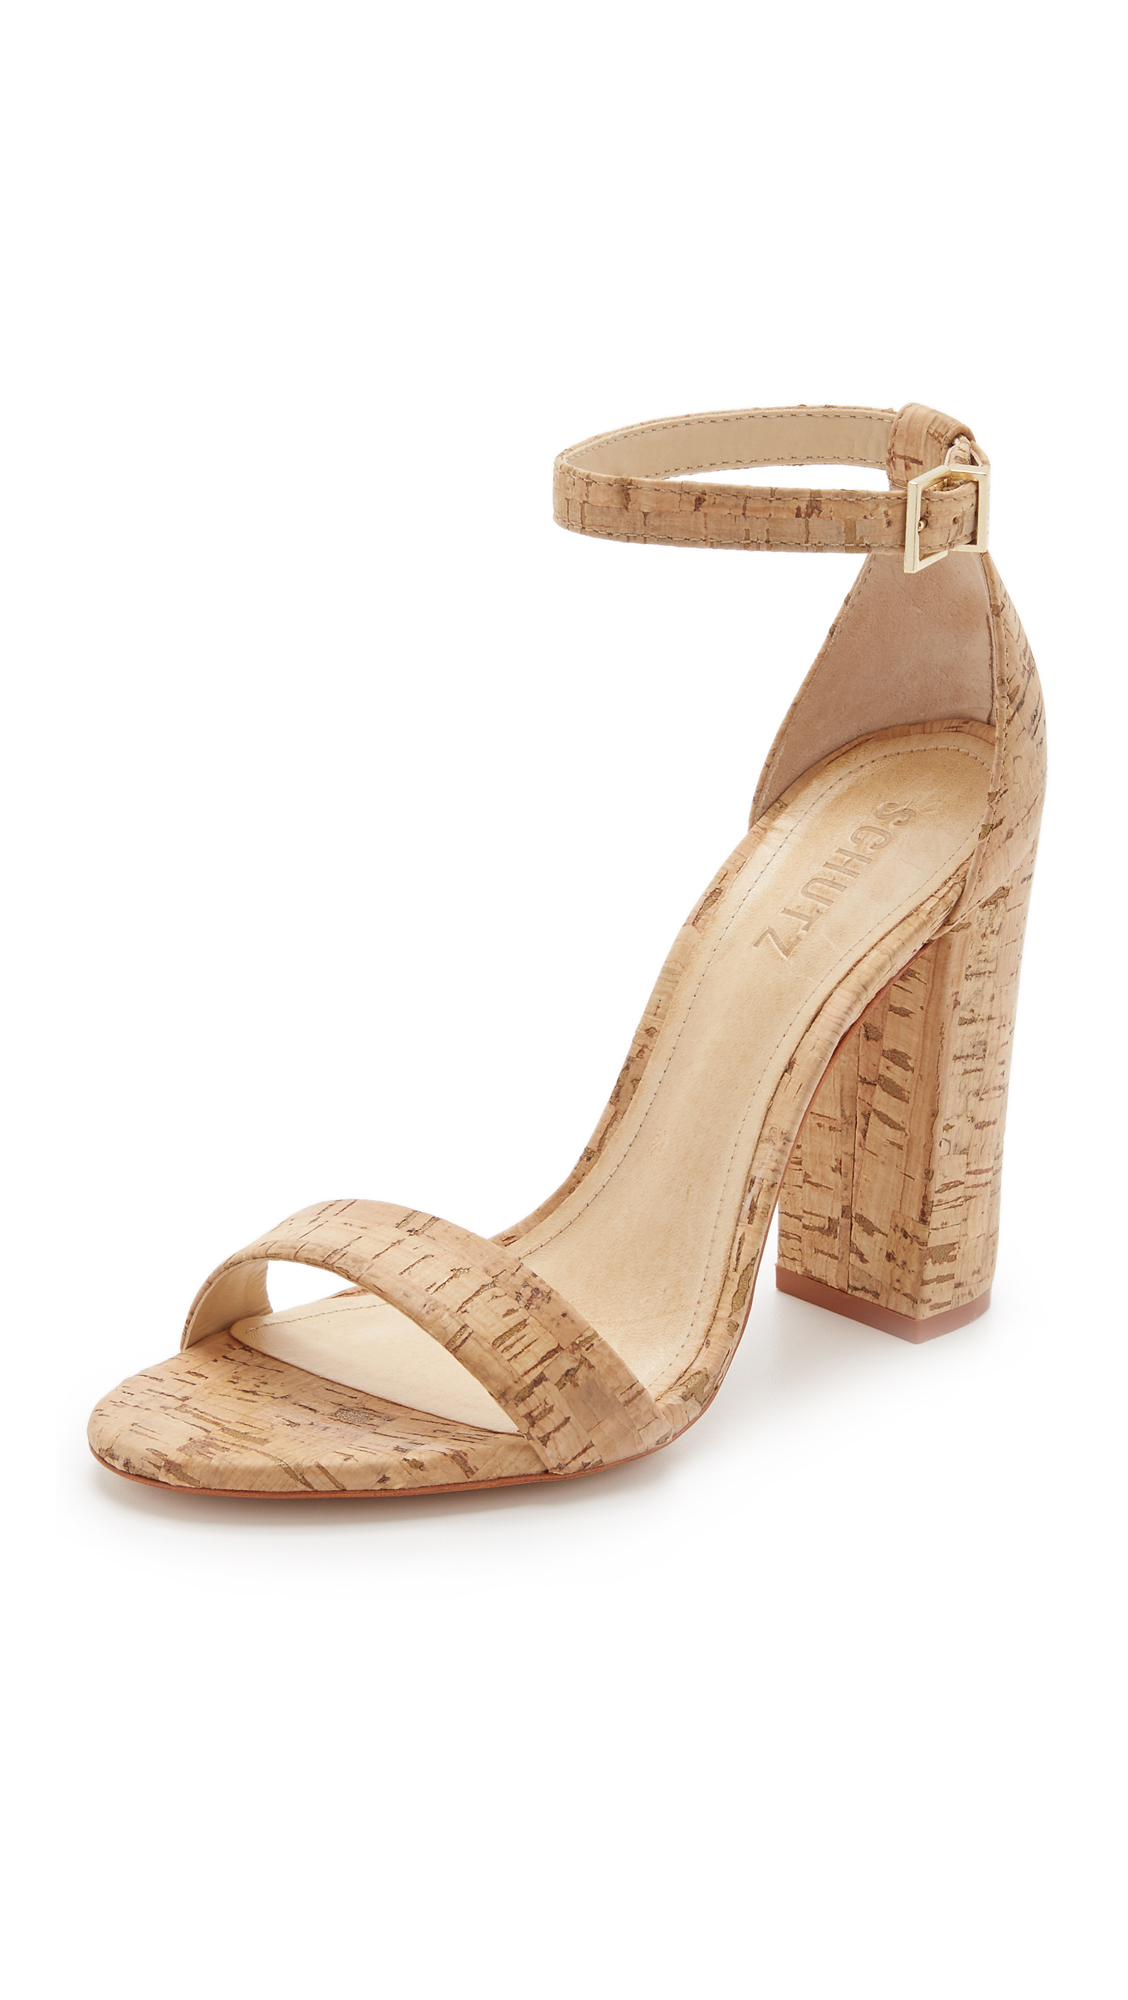 Schutz Enida Sandals - Natural